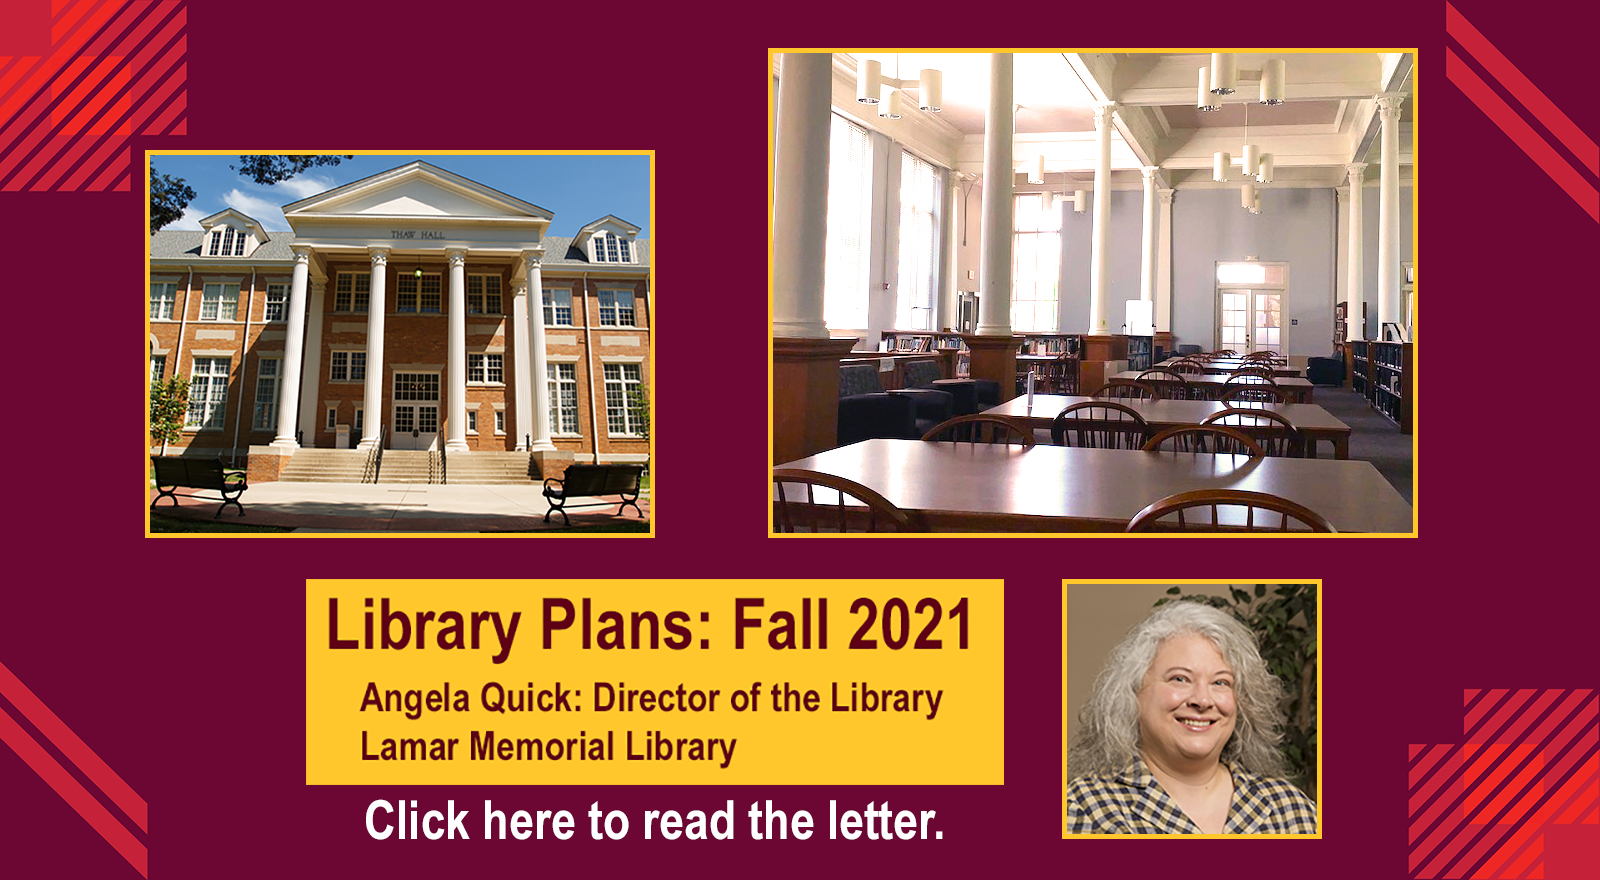 Pictures of Thaw hall, inside the library's reading room, Angela Quick, and plans for fall 2021